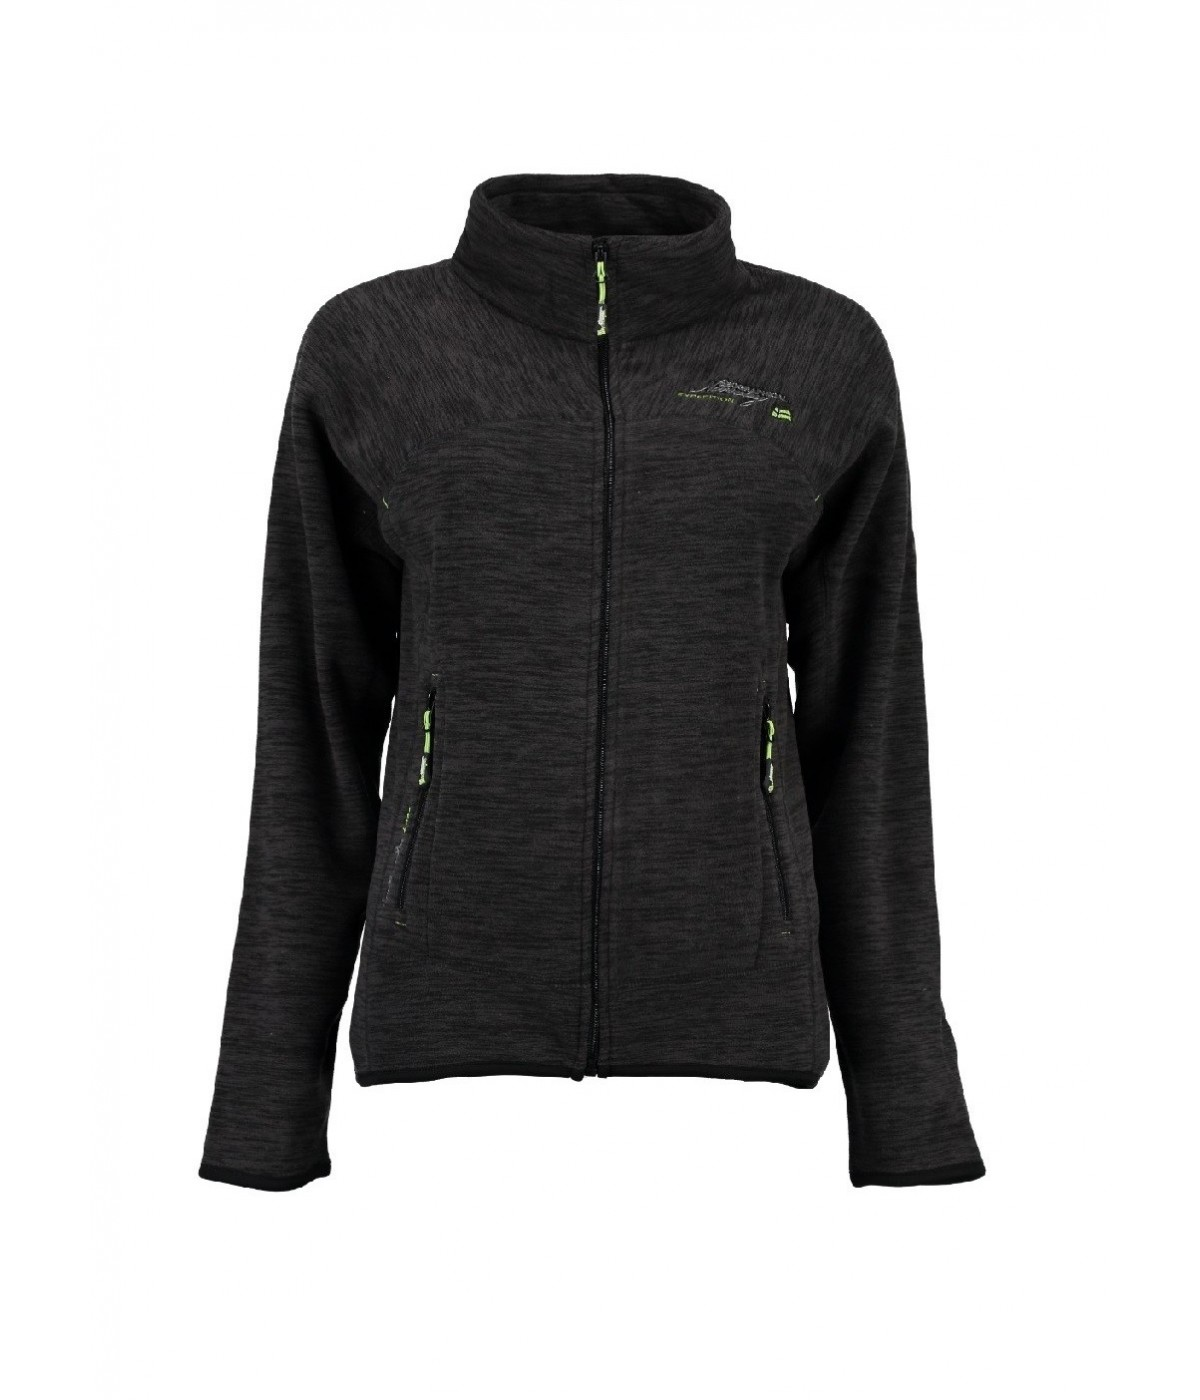 Polaire Femme Geographical Norway Talisman Noir